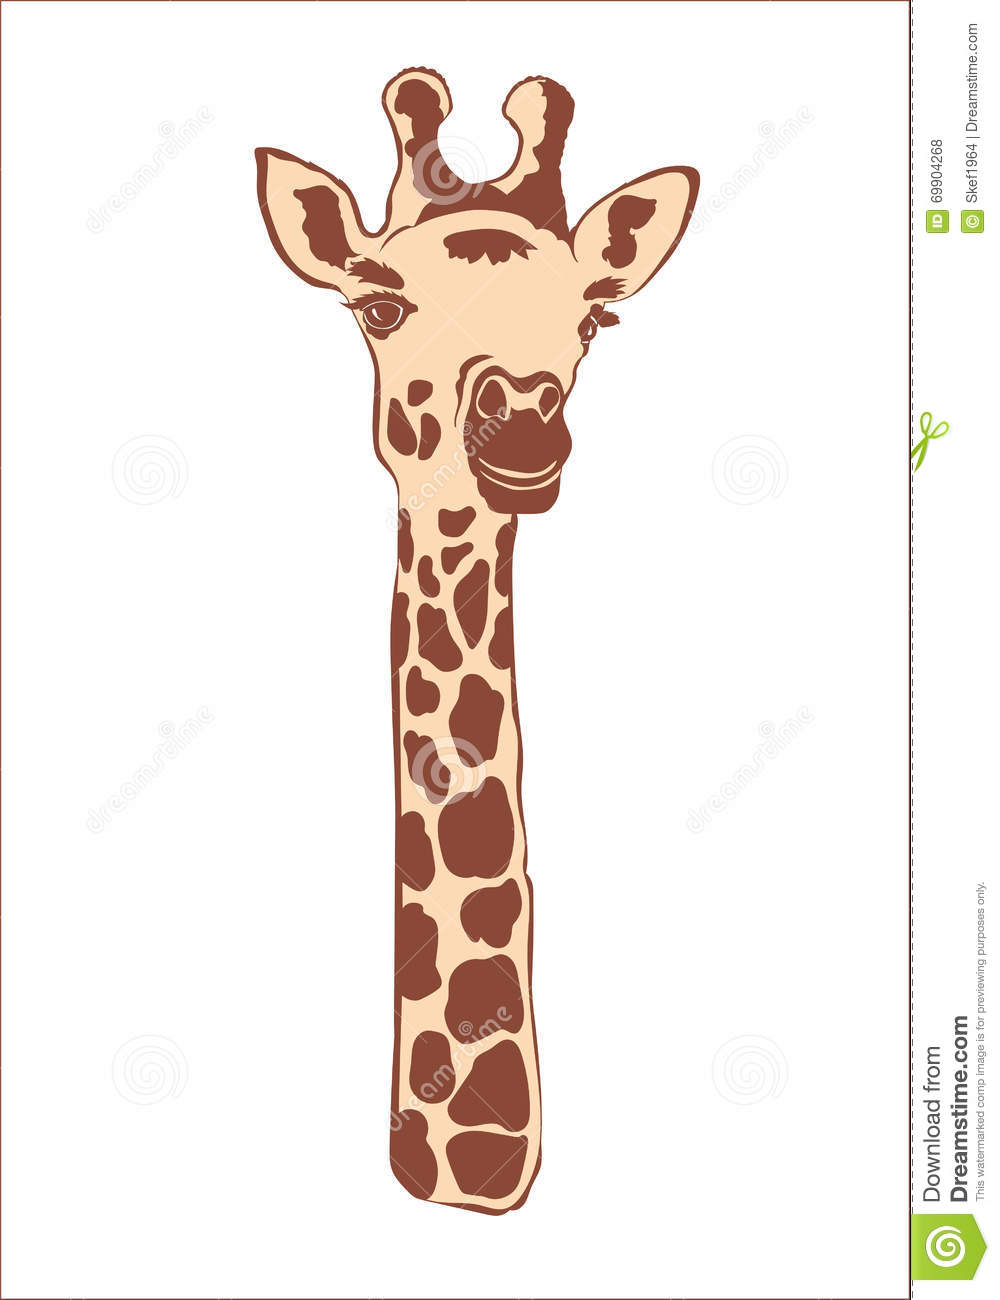 giraffe head white background - photo #46